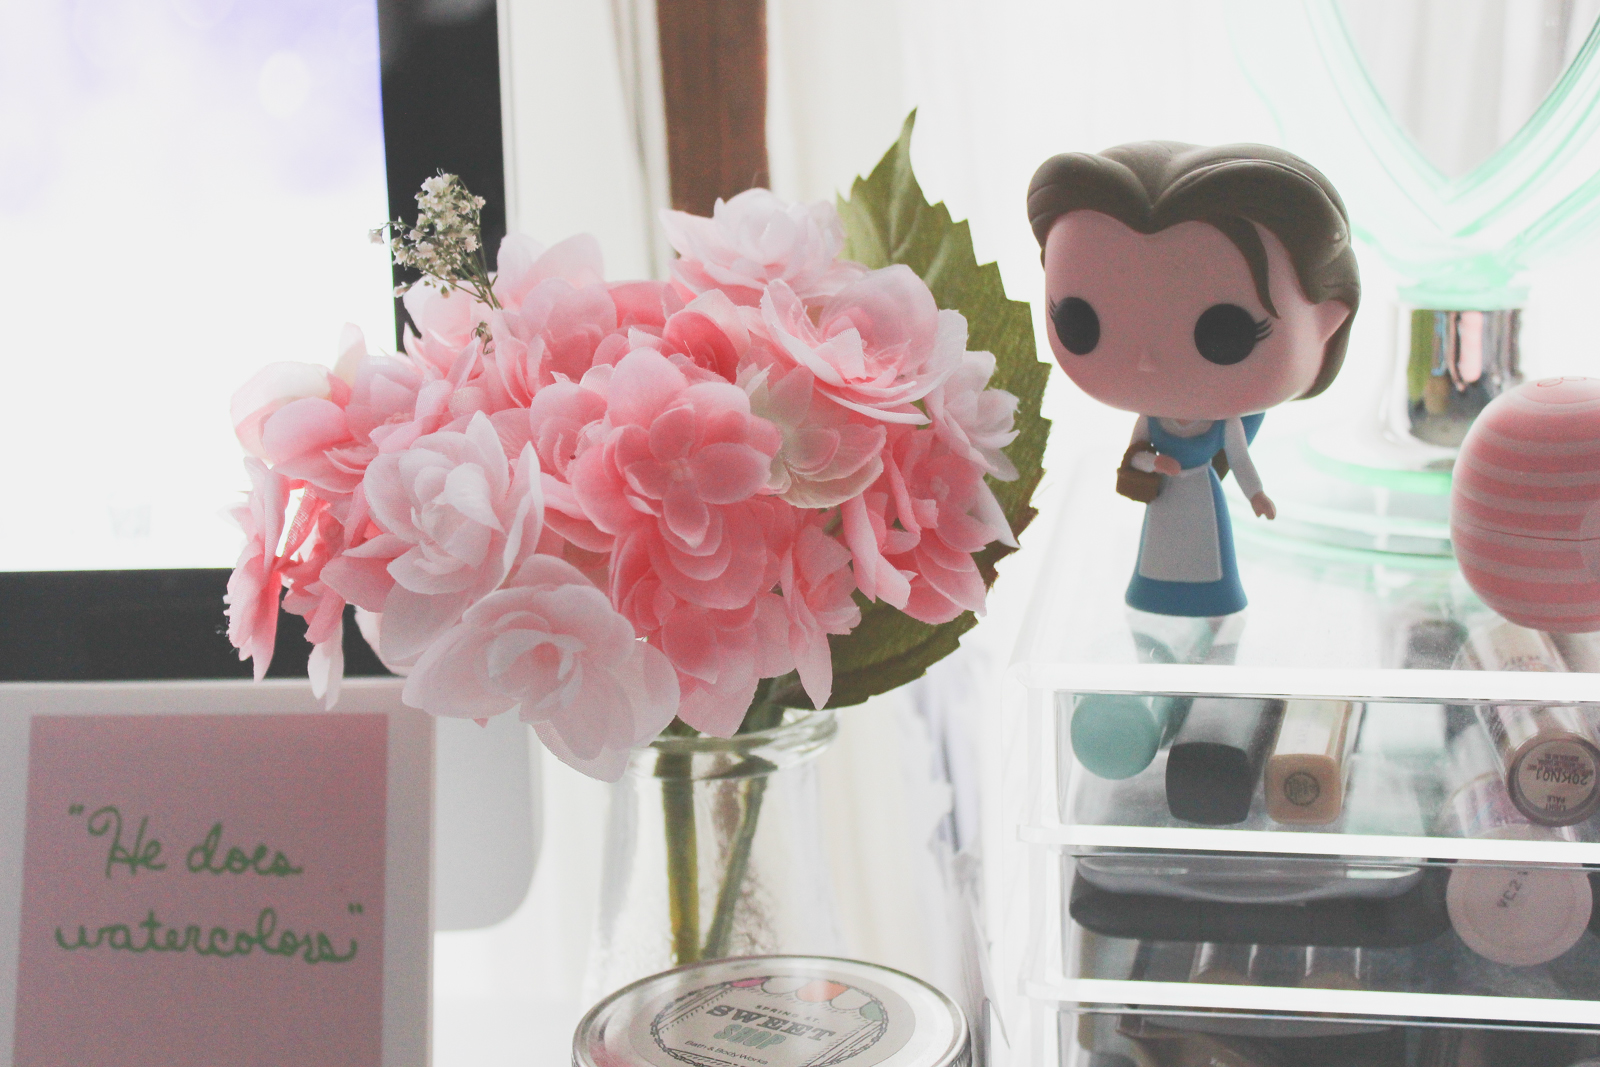 Desk Decor from The Little Things #2 | Mandy Leigh Blog